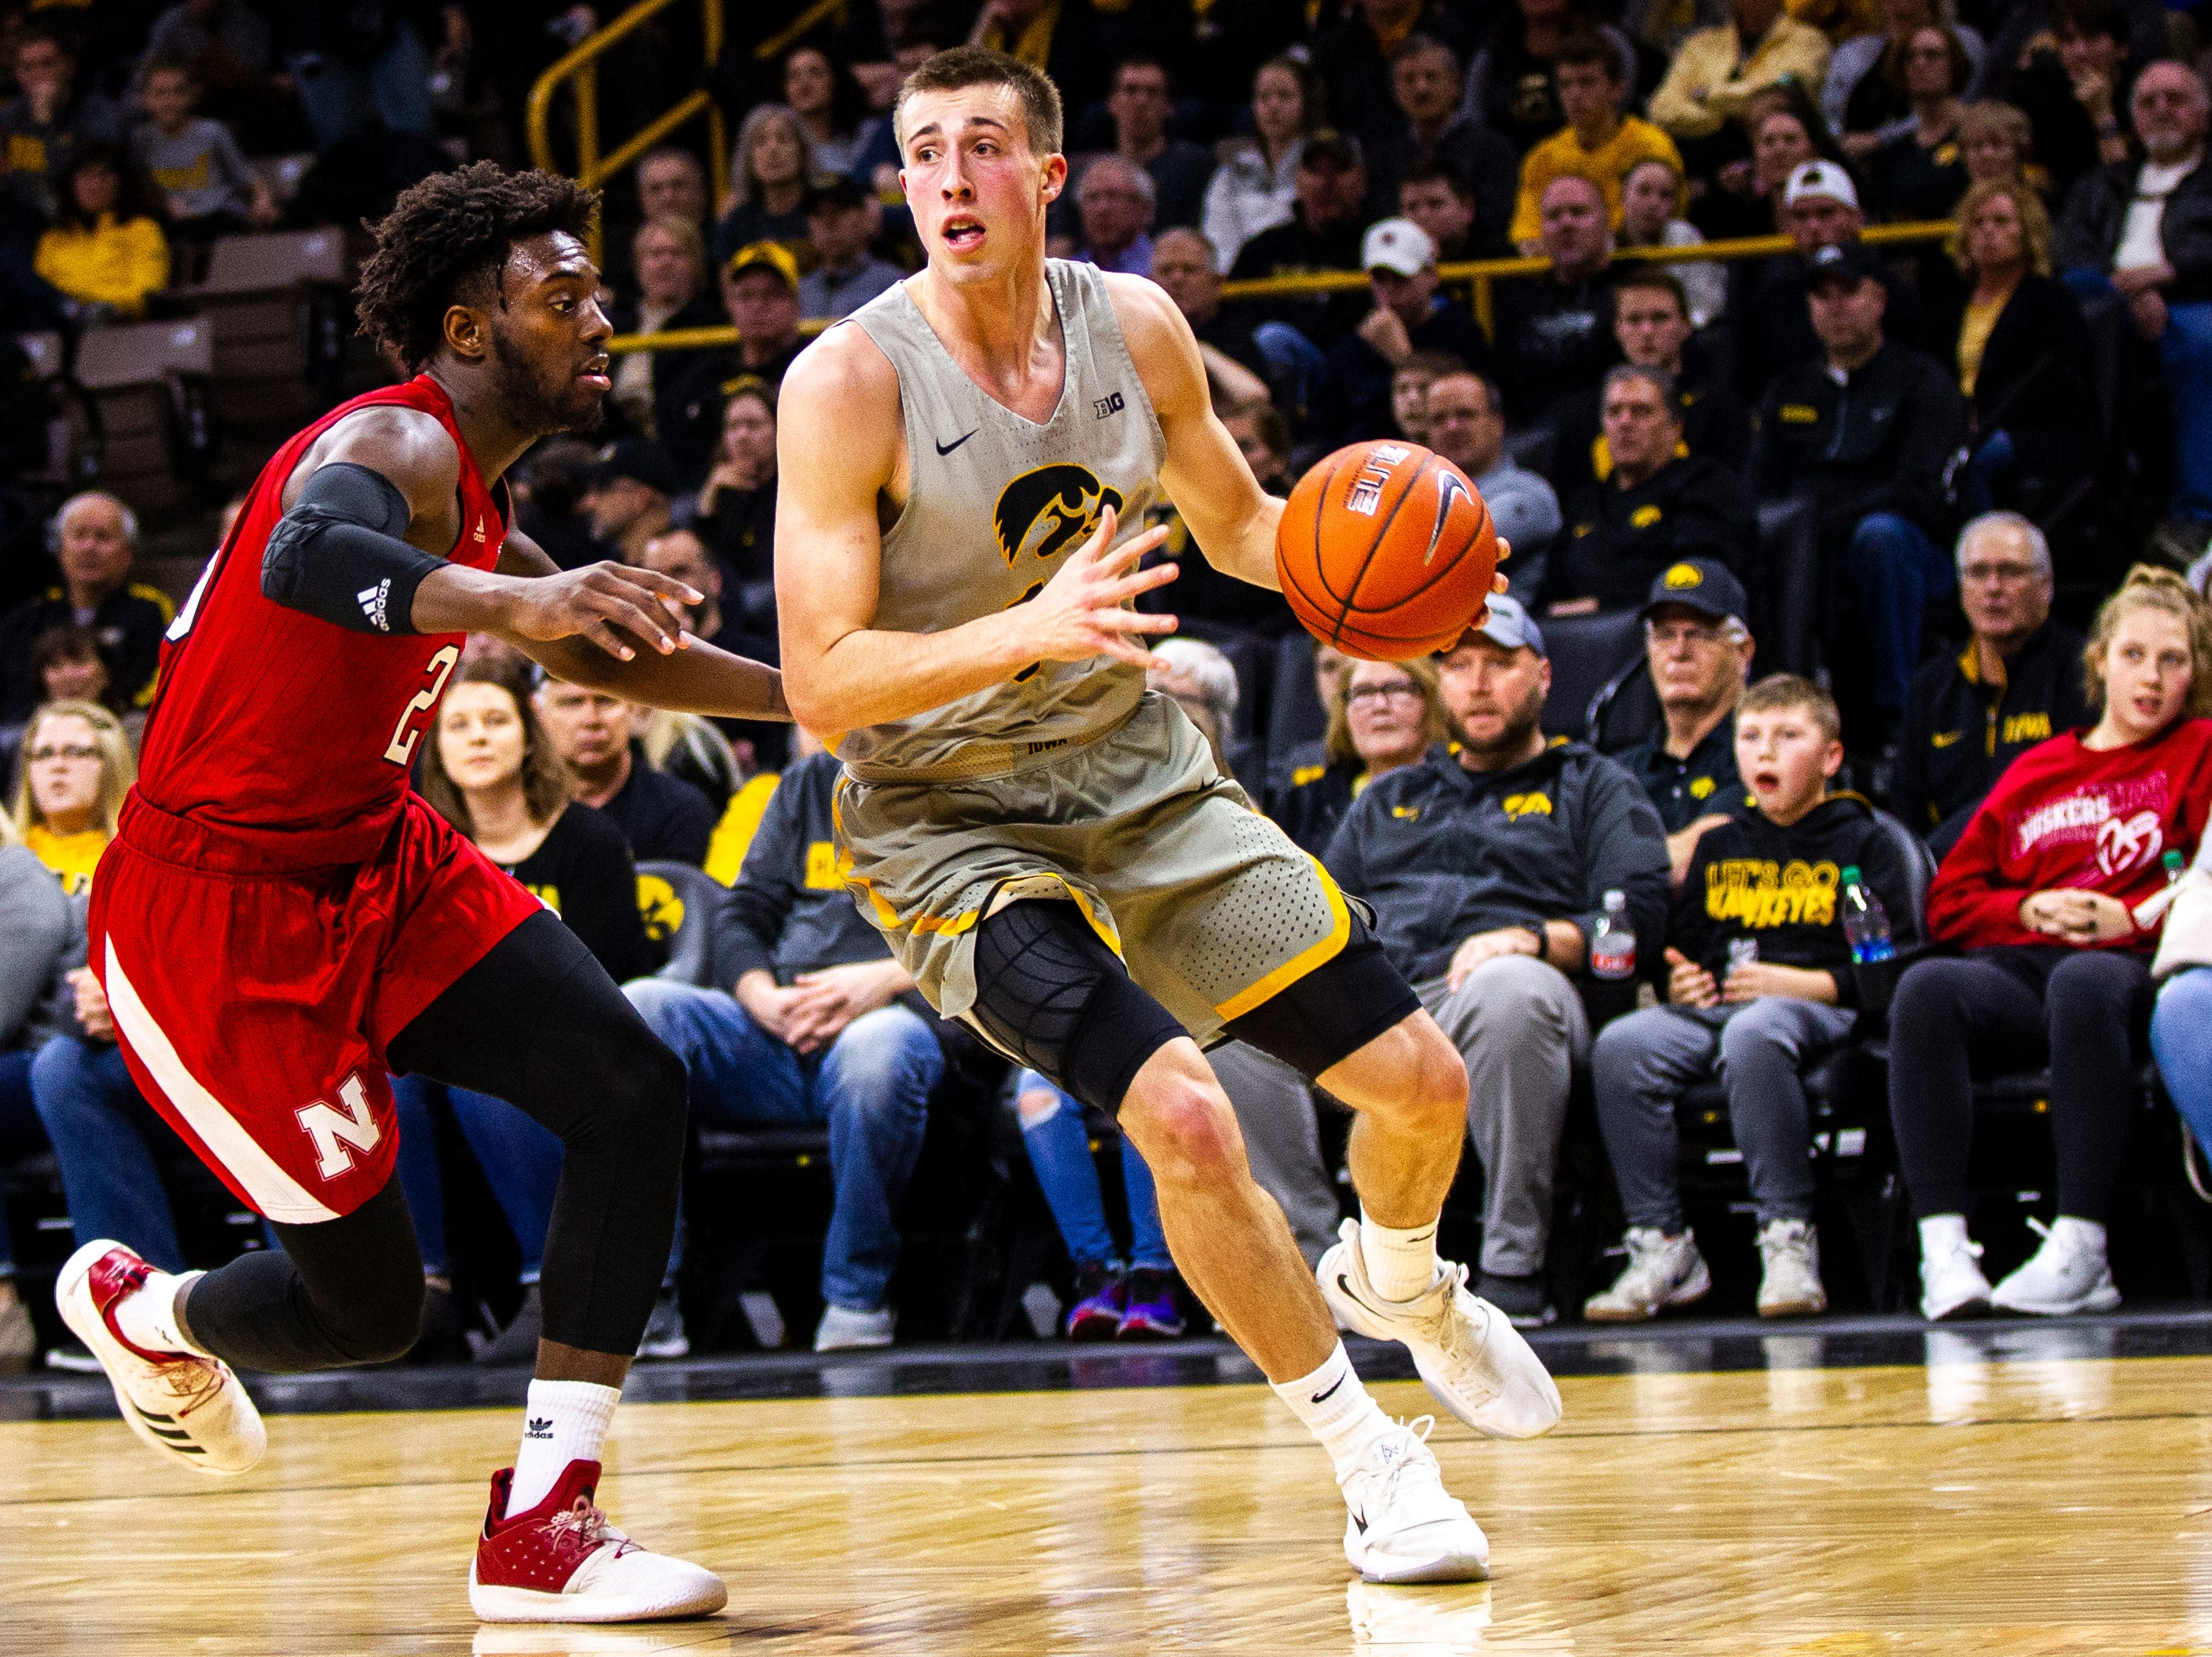 Iowa guard Joe Wieskamp (10) drives to the hoop during a NCAA Big Ten Conference men's basketball game on Sunday, Jan. 6, 2019, at the Carver-Hawkeye Arena in Iowa City, Iowa.